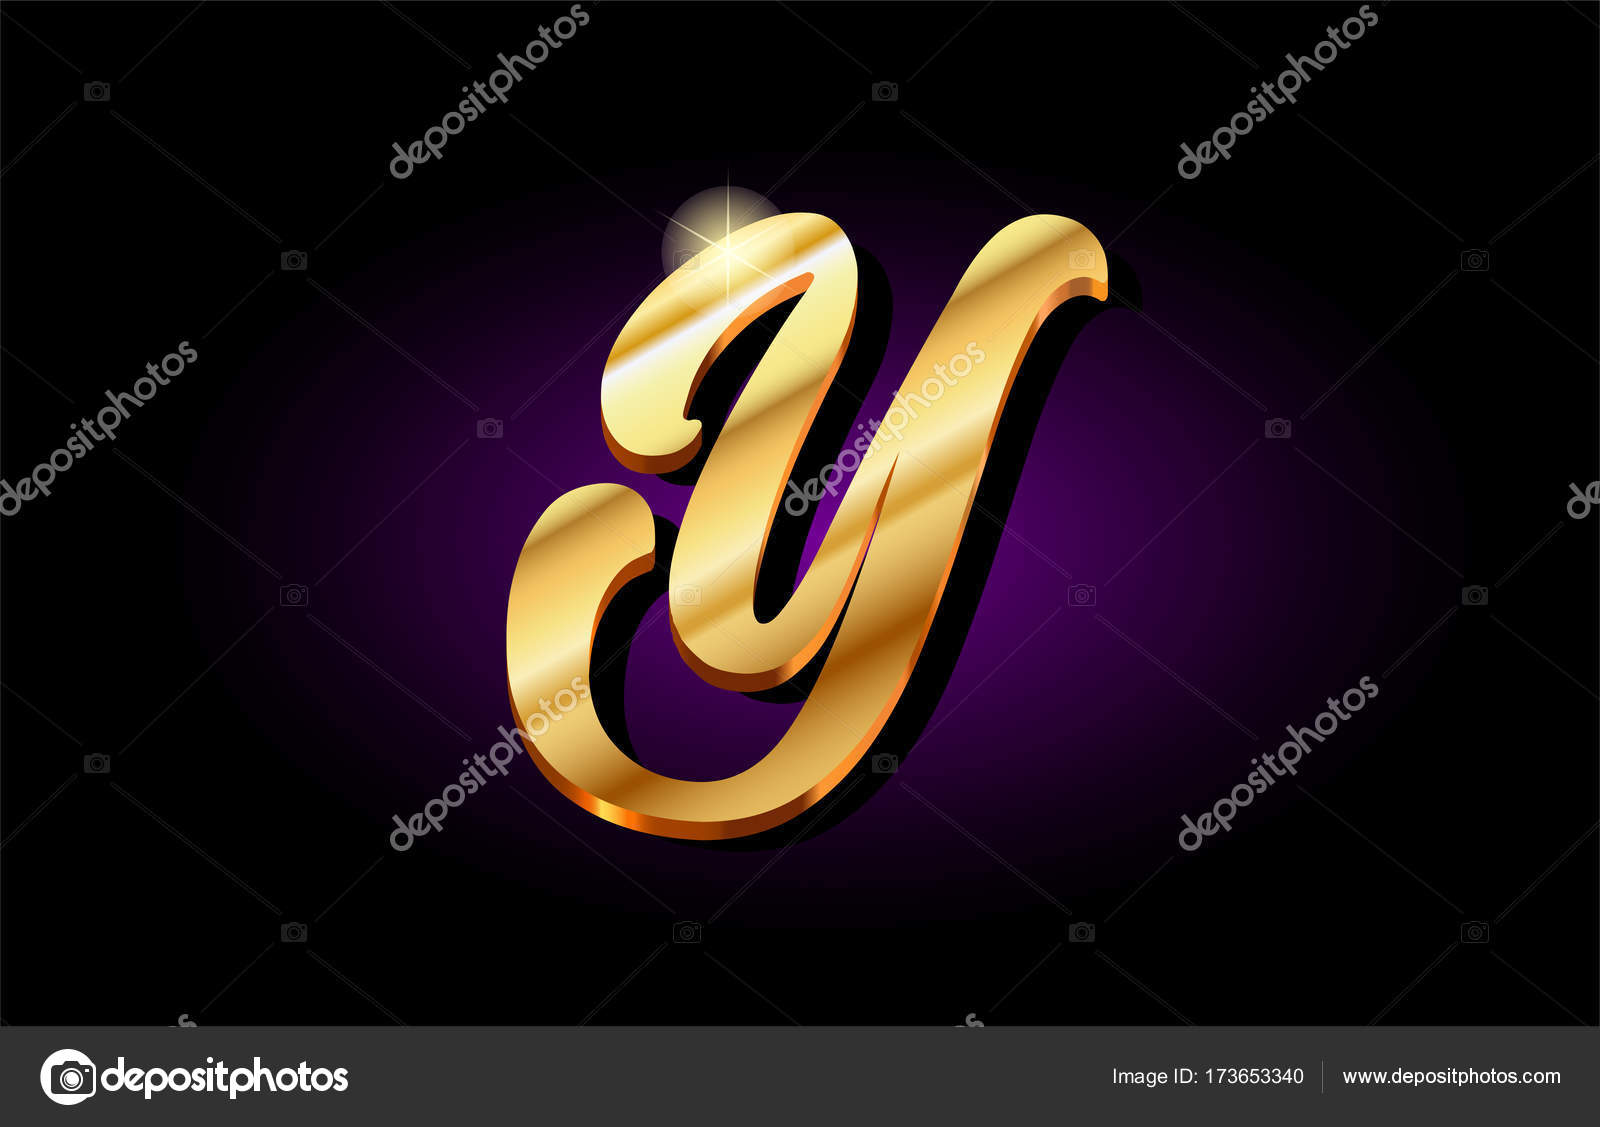 Y alphabet letter golden 3d logo icon design stock vector y alphabet letter golden 3d logo icon design stock vector thecheapjerseys Image collections